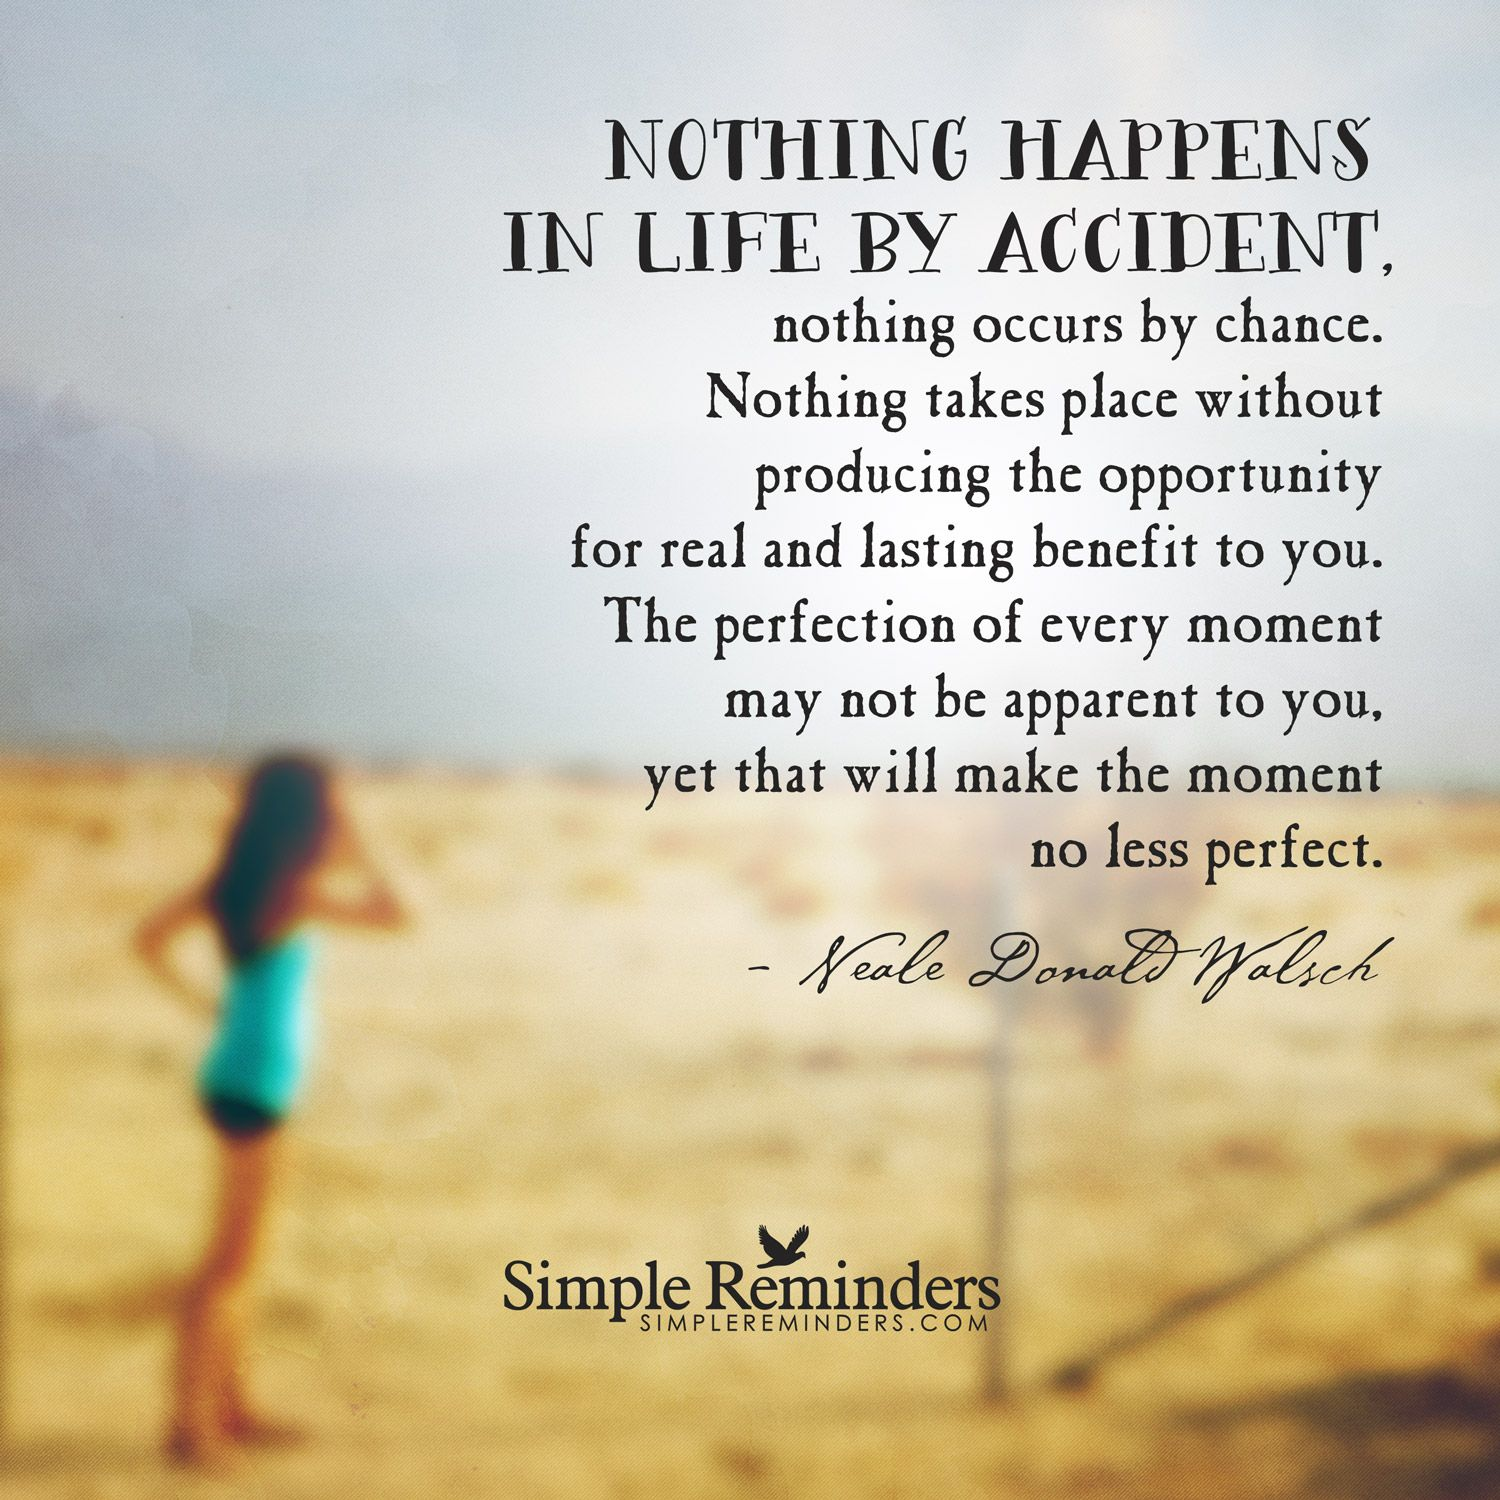 Nothing happens in life by accident, nothing occurs by